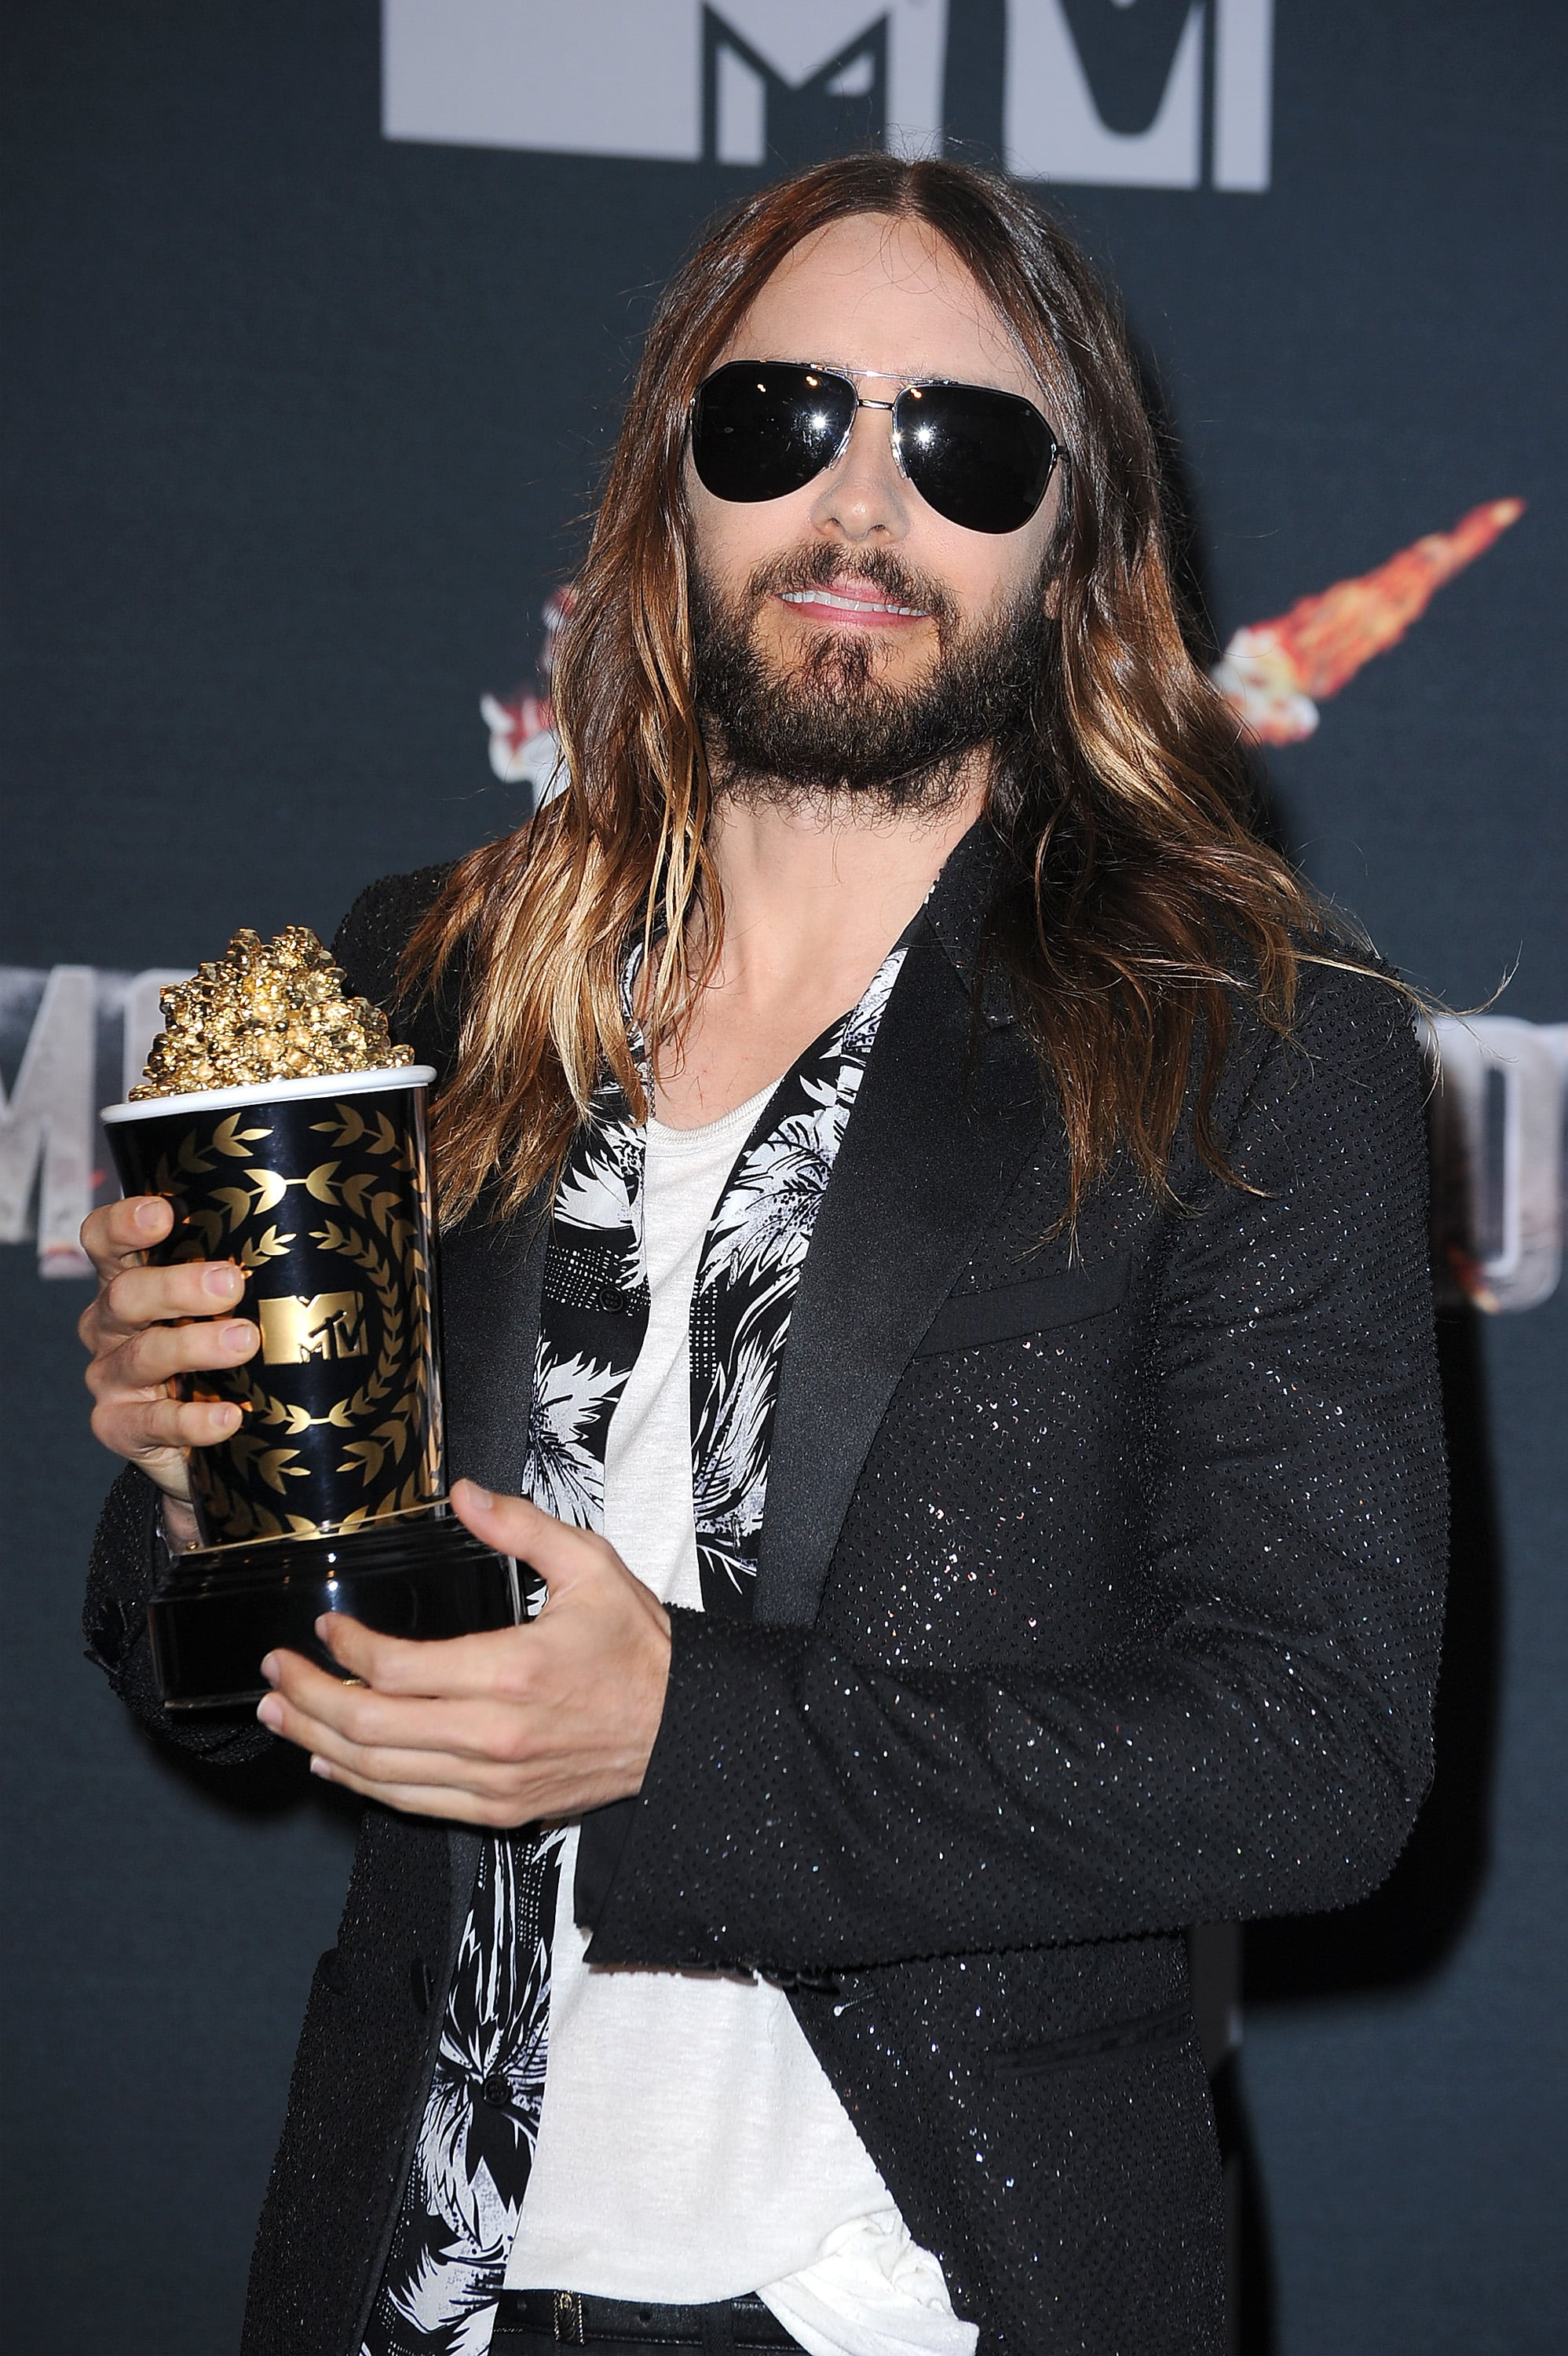 Jared Leto Takes a Helicopter From Coachella to Accept His MTV Movie Award